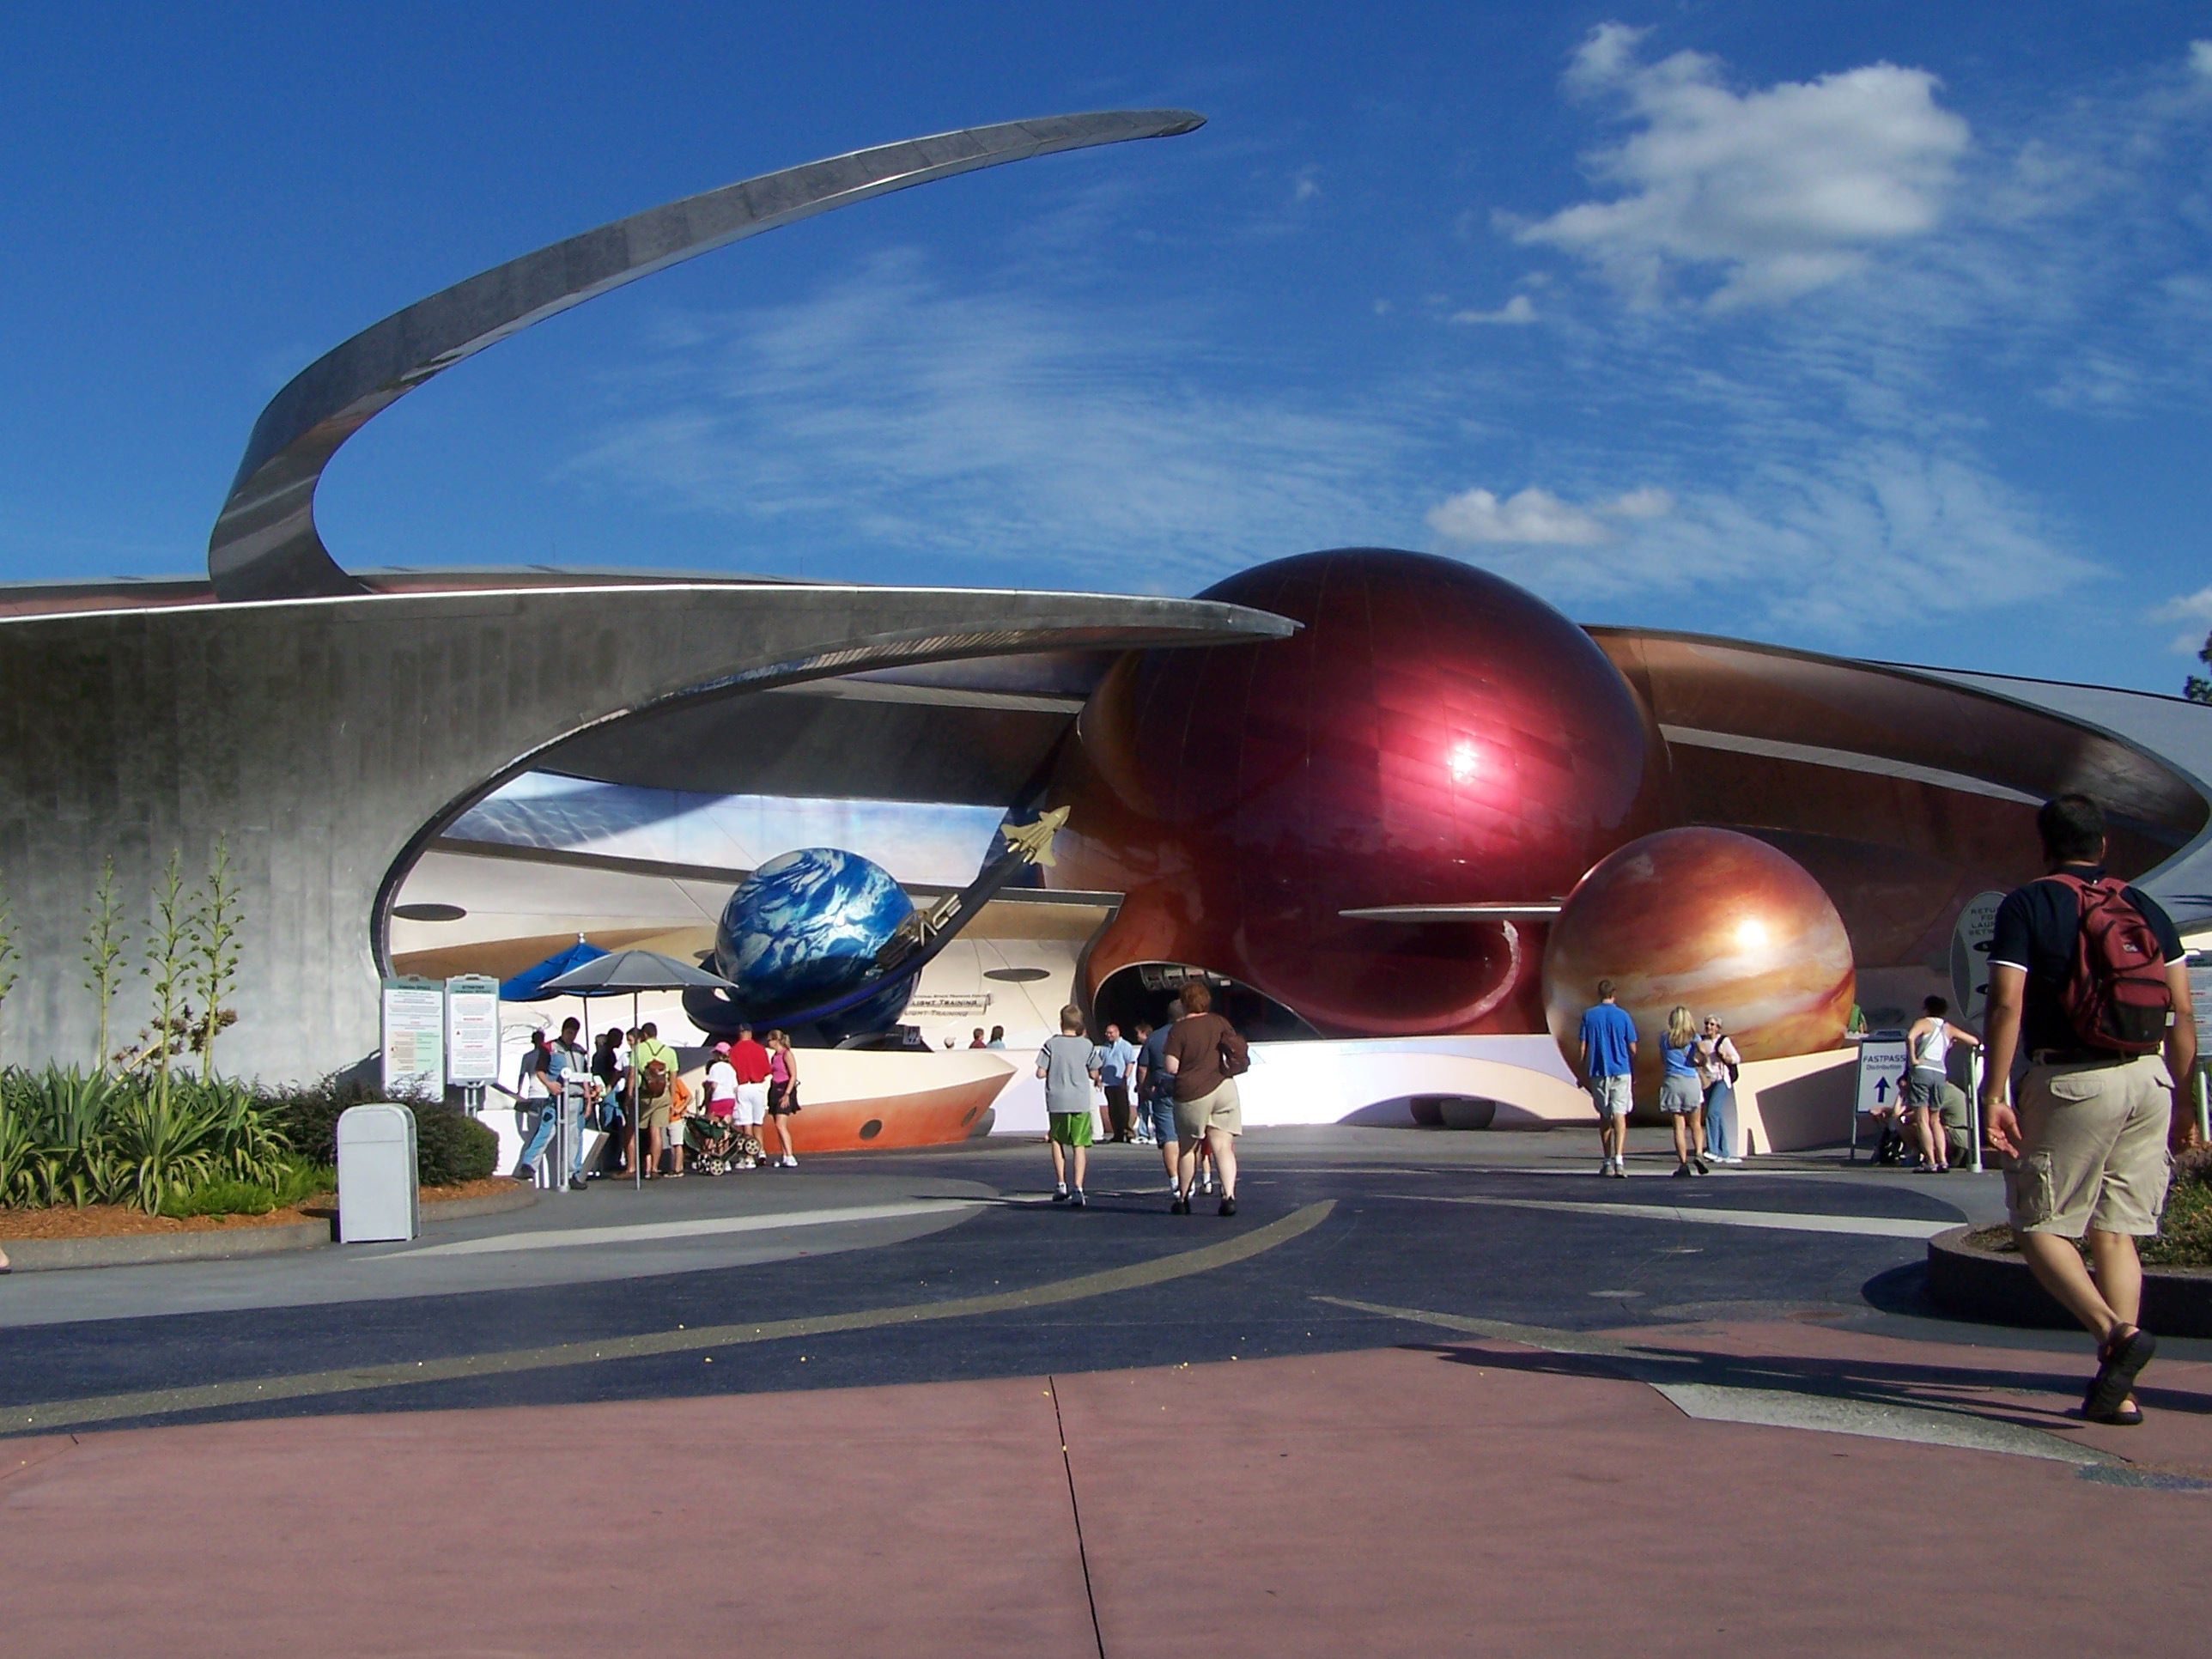 mission space ride at epcot - photo #7